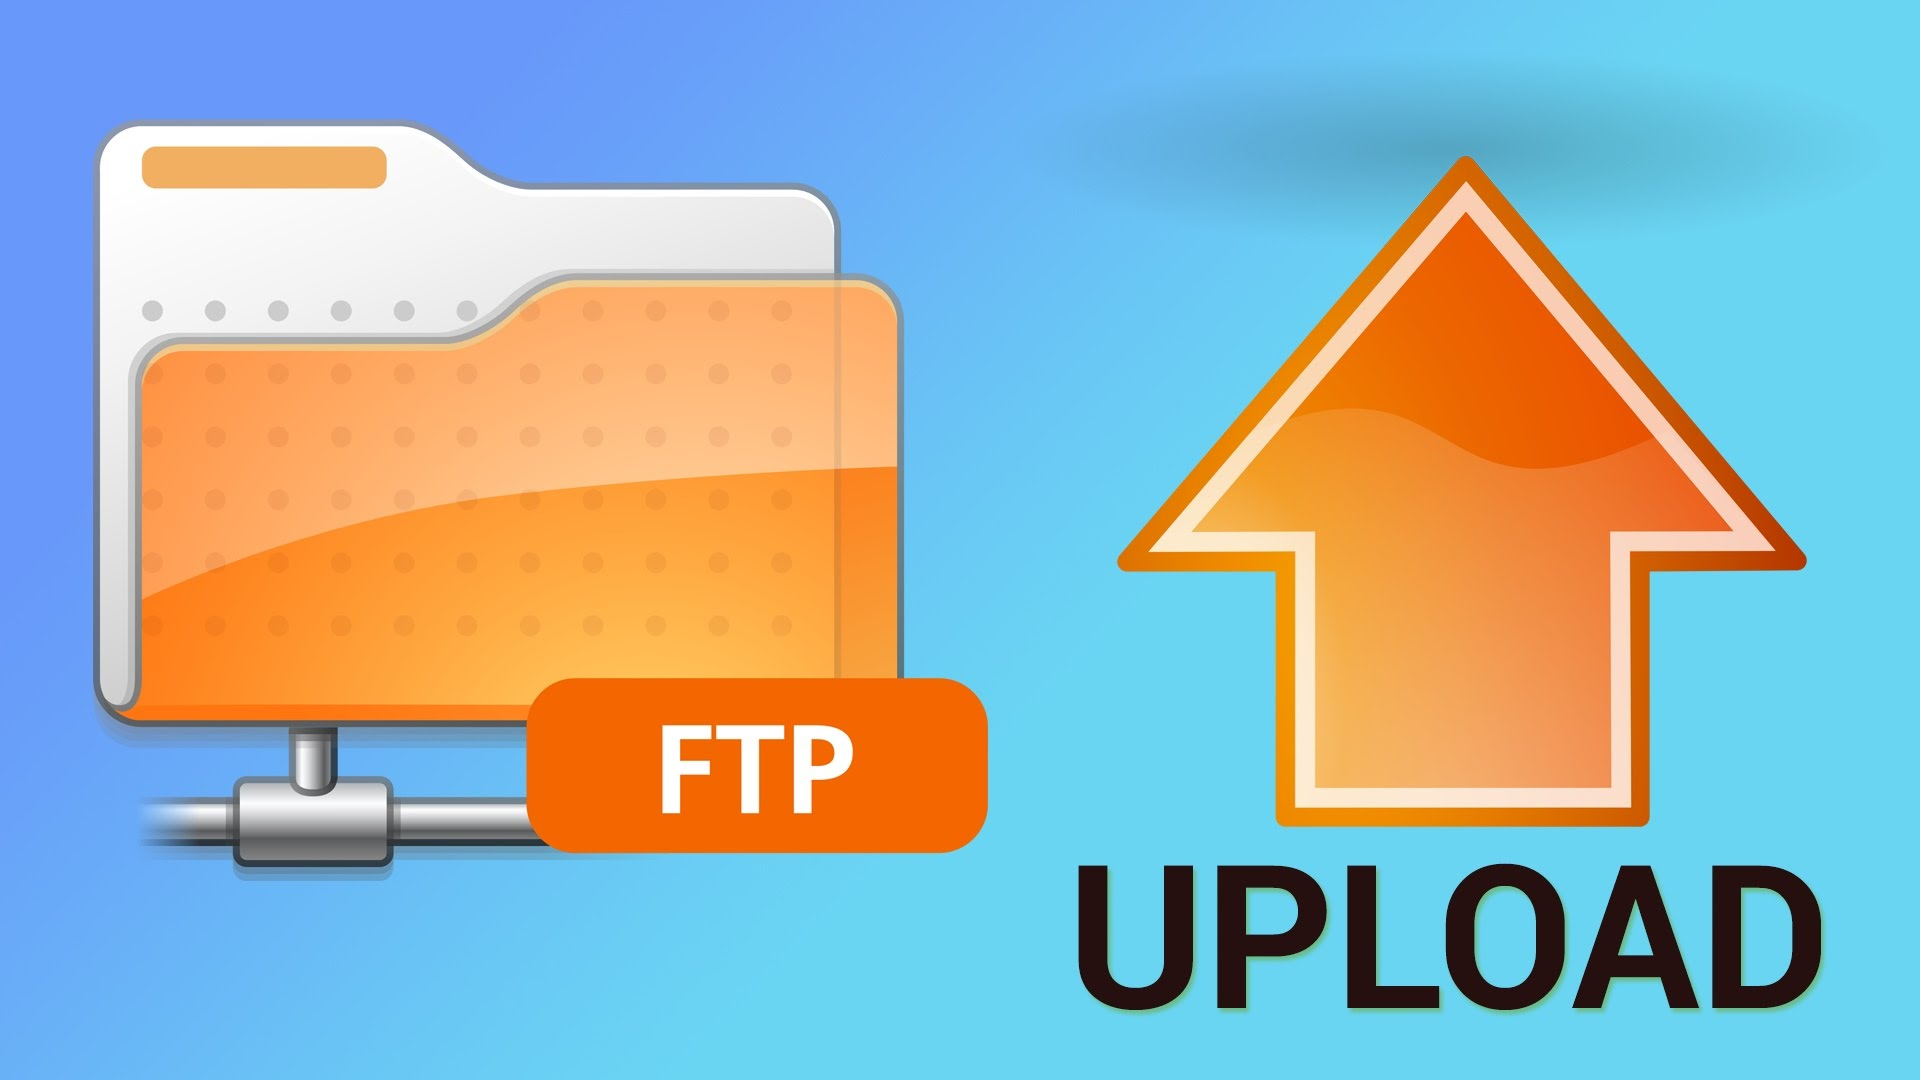 FTP Programs – What are they and how are they used?